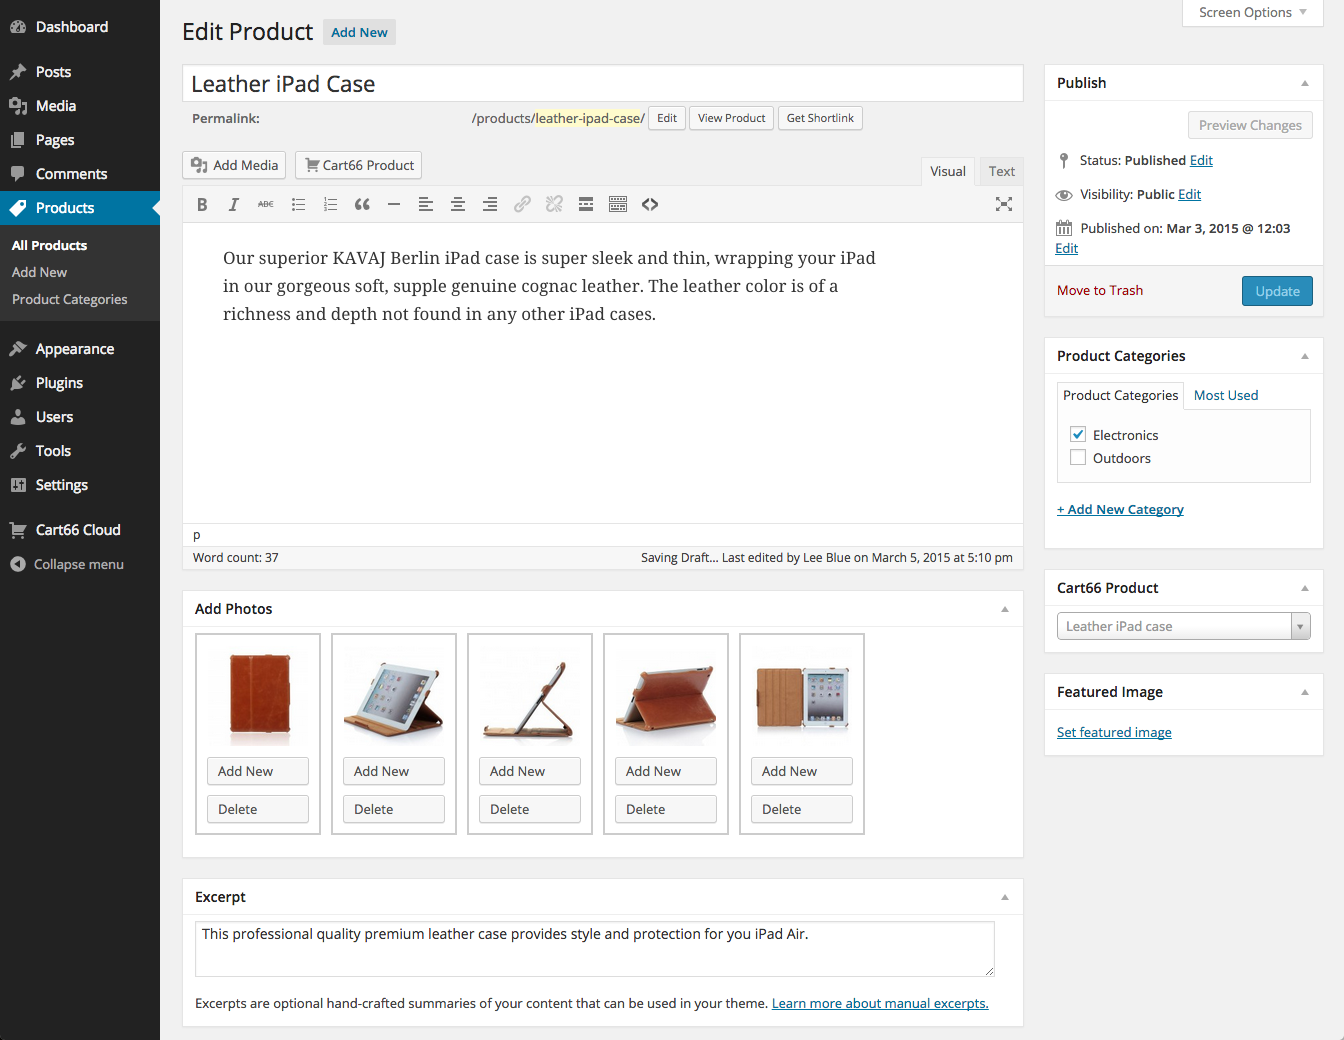 Cart66 product gallery in WordPress page editor